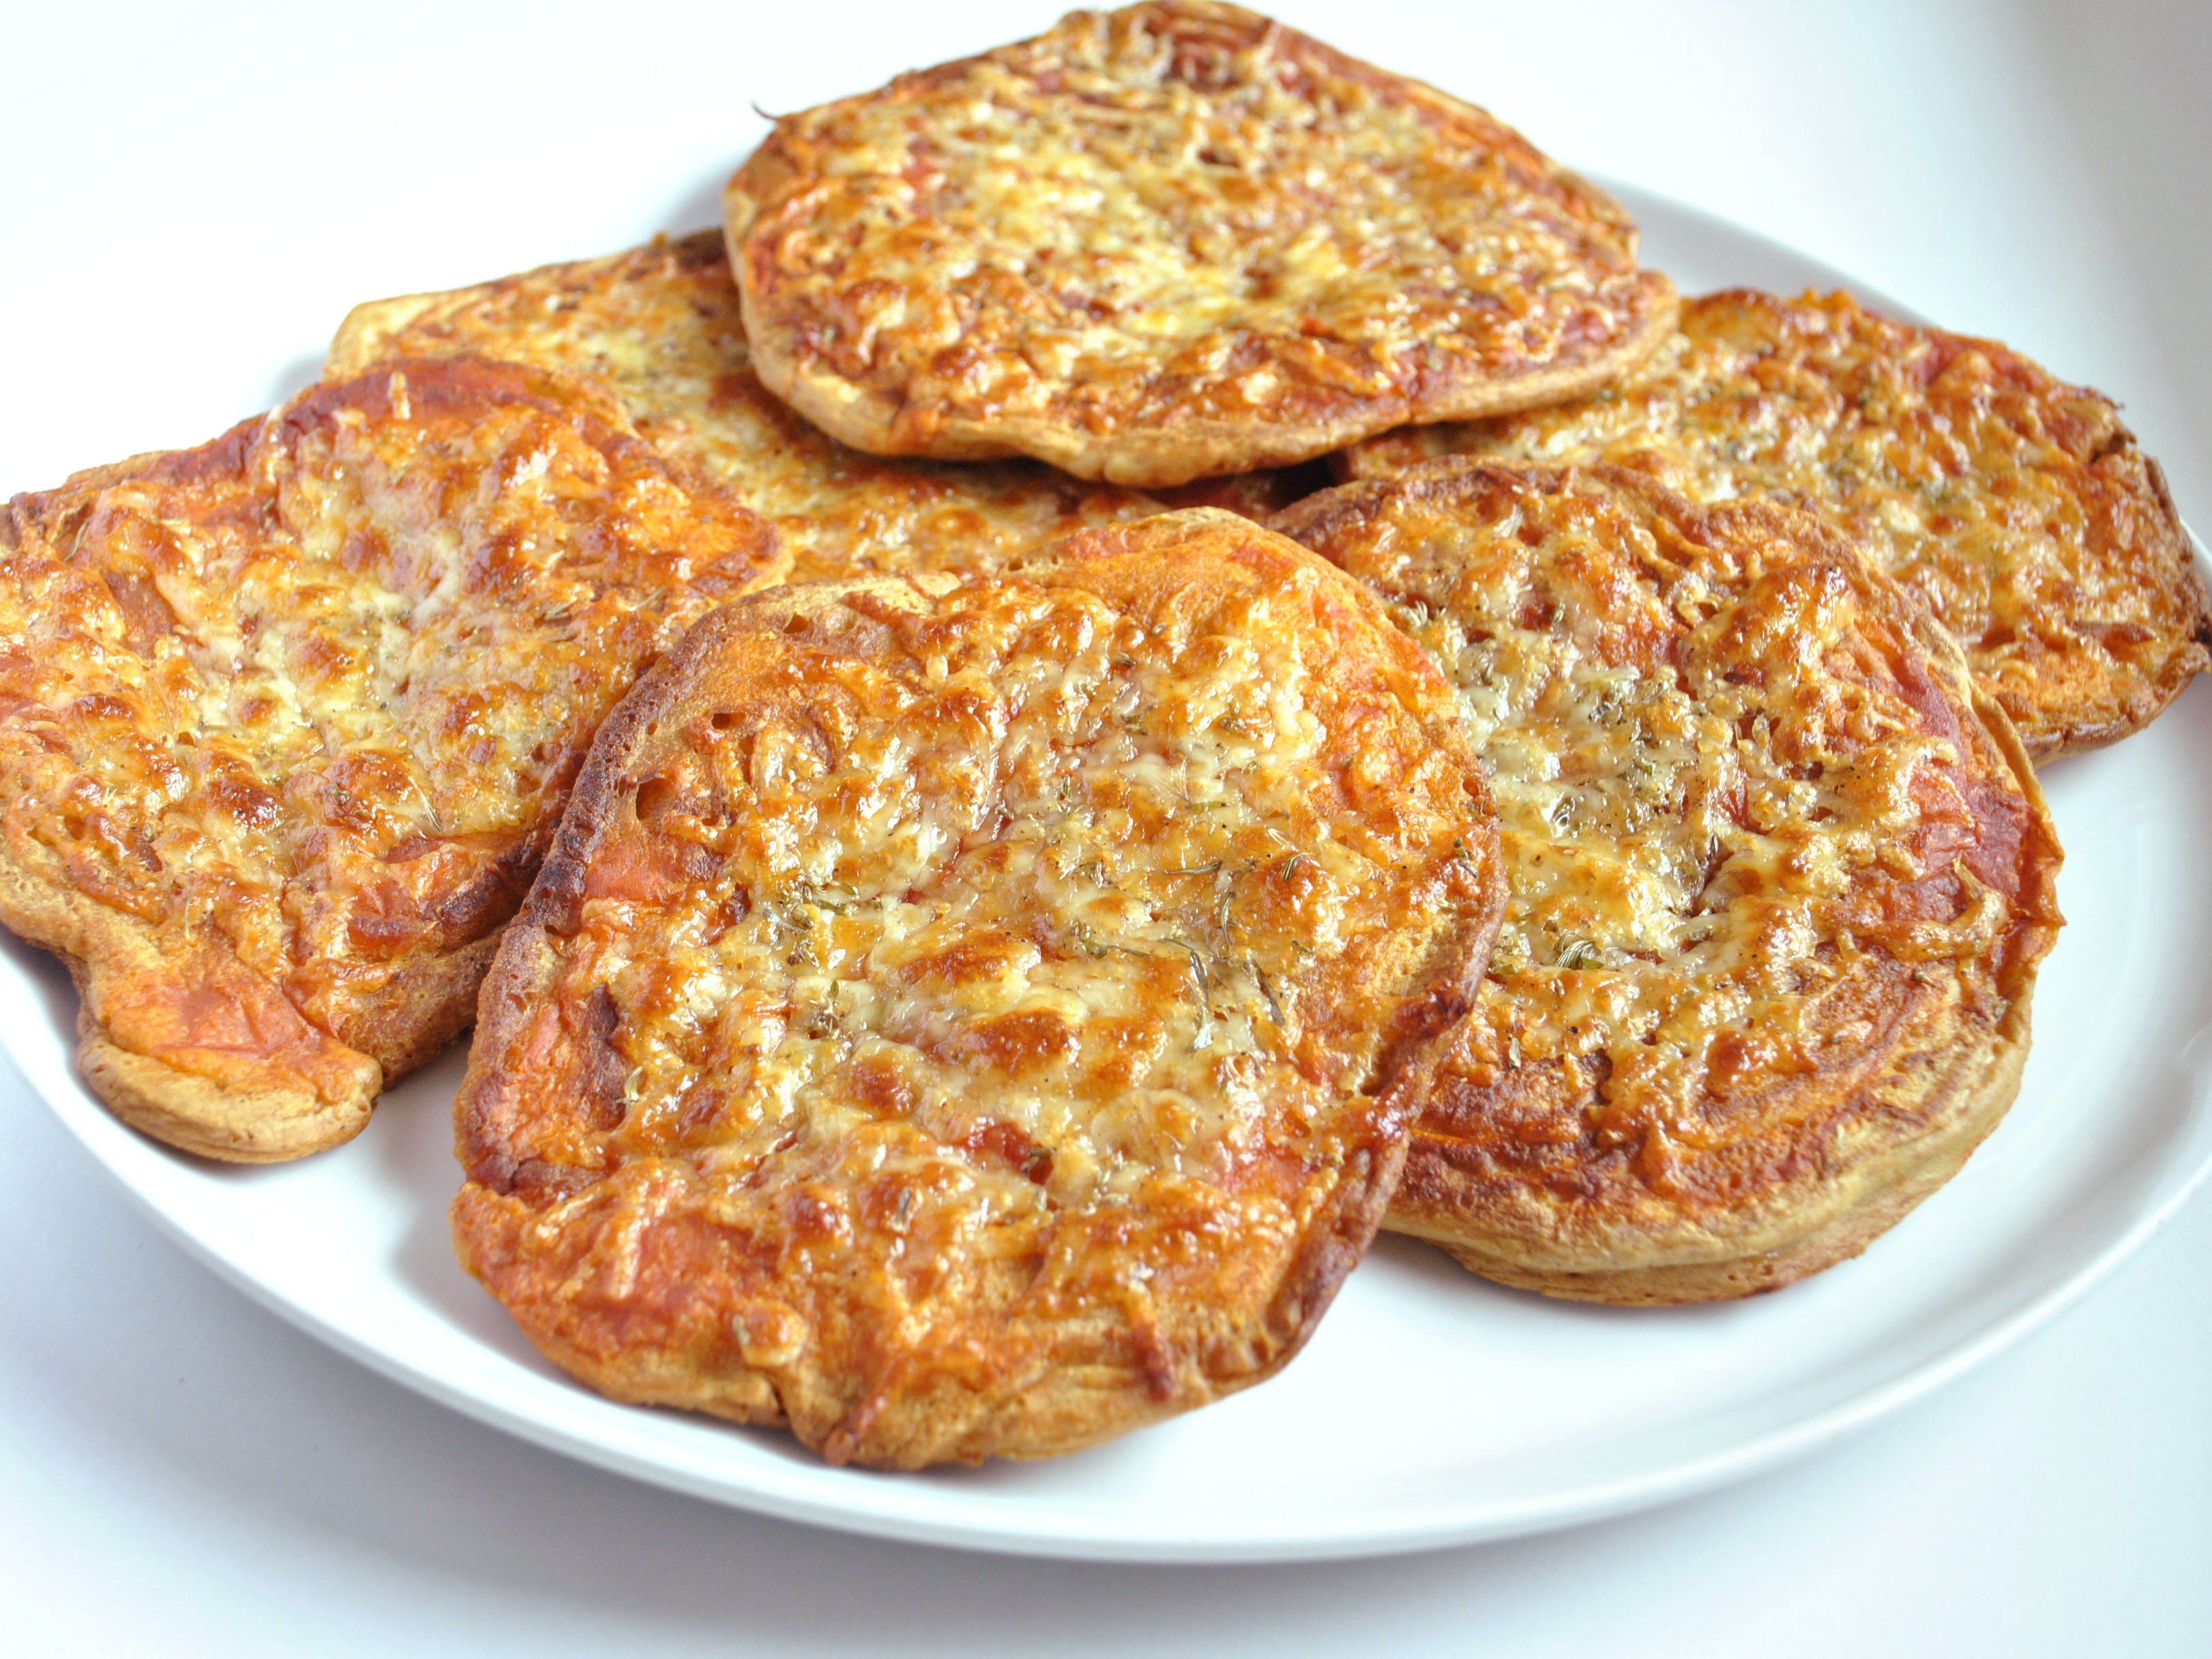 How To Make Crumpet Pizzas 7 Steps With Pictures Wikihow